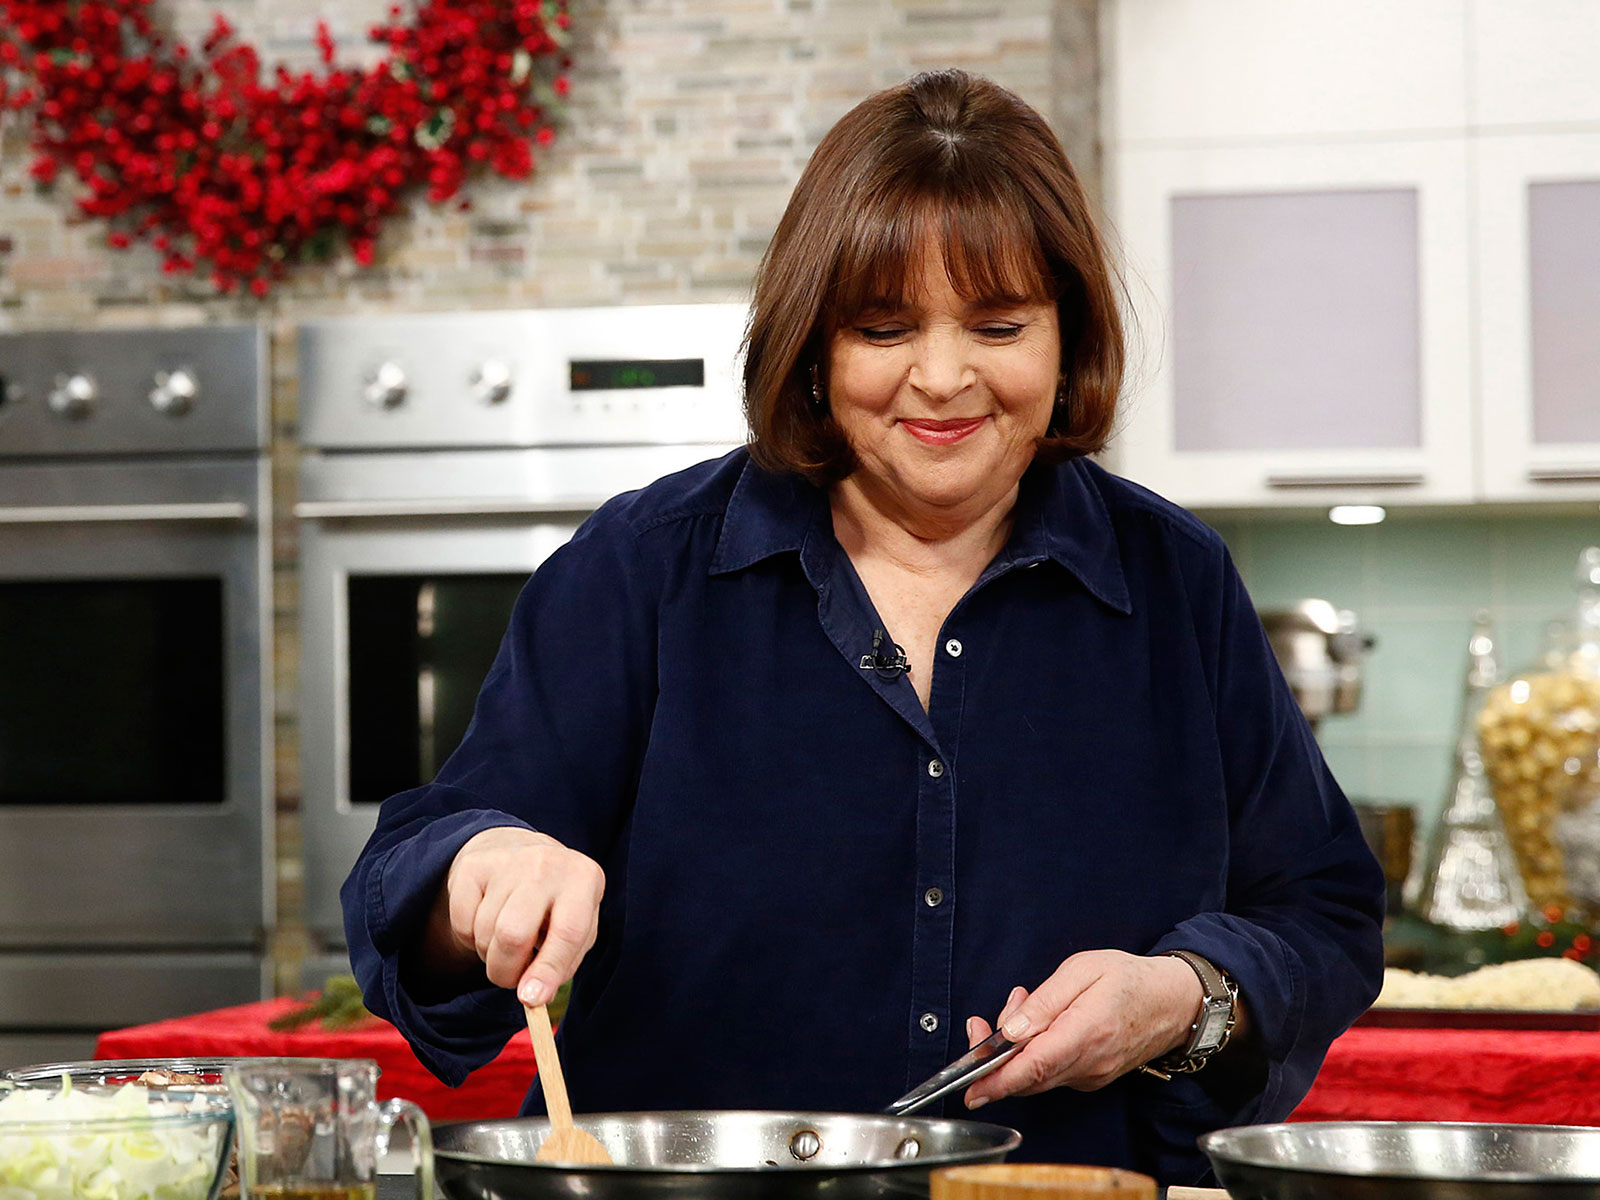 Ina Garten Just Shared Her Favorite Super Bowl Dip Recipe